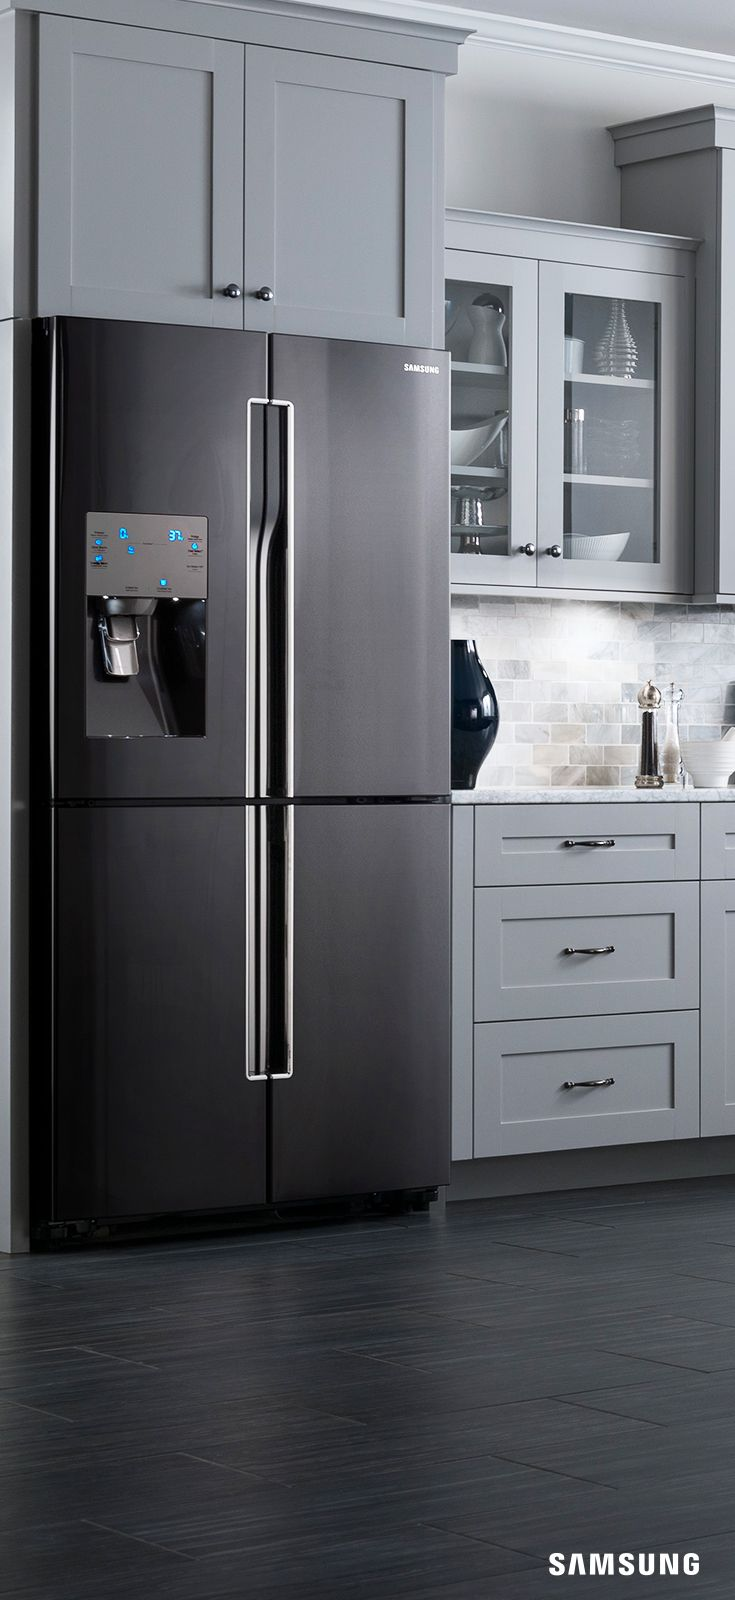 exceptional Best Company For Kitchen Appliances #2: The next thing in kitchen inspiration is the Samsung Black Stainless Steel  4-Door Flex